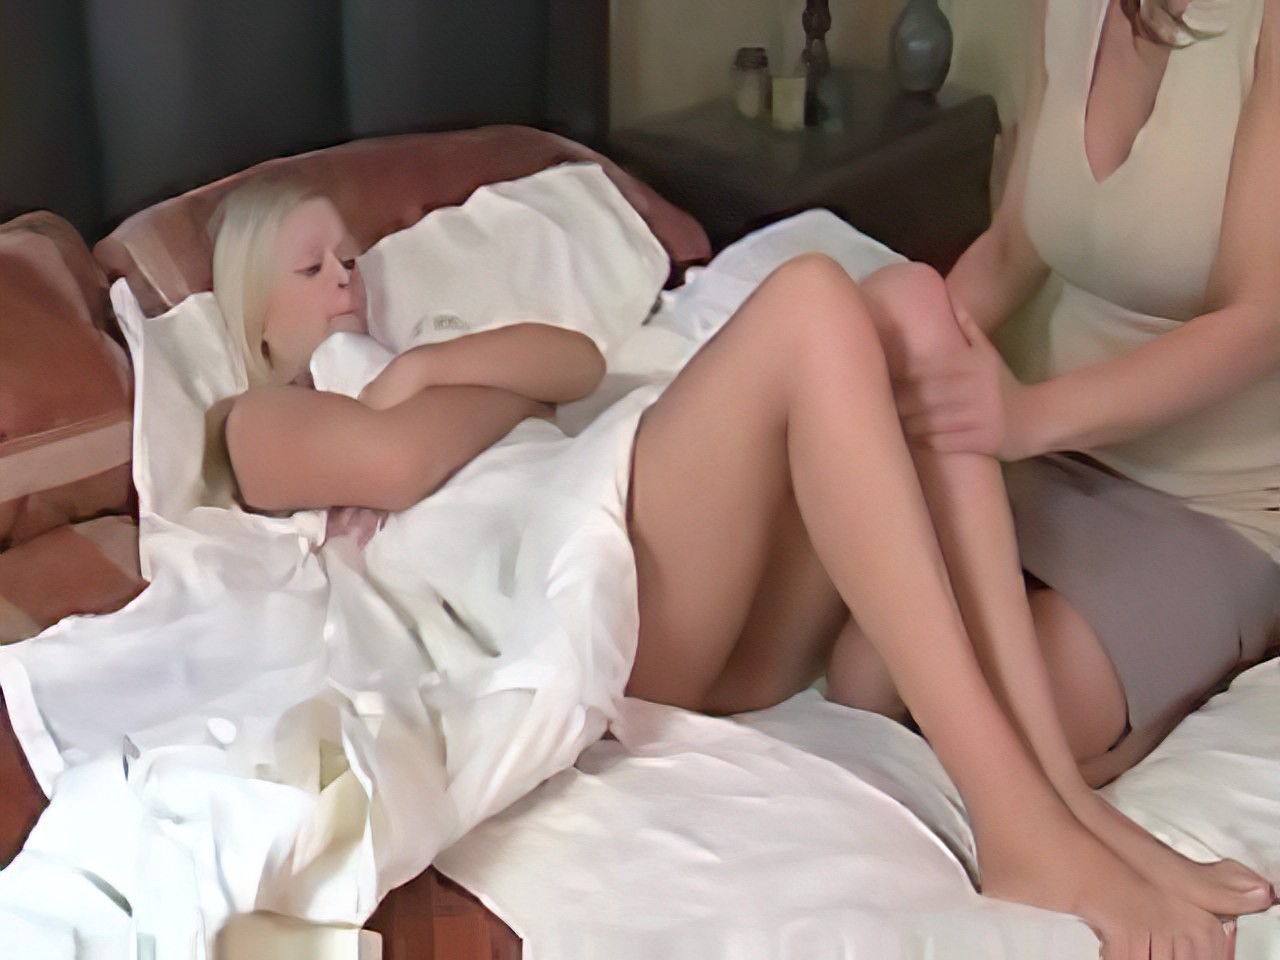 Lesbian First Time Old And Young Old And Young Lesbian First Time Lesbian Old Young First Time Extreme Tits Kitchen Housewife Korean Amateur Nurse Young